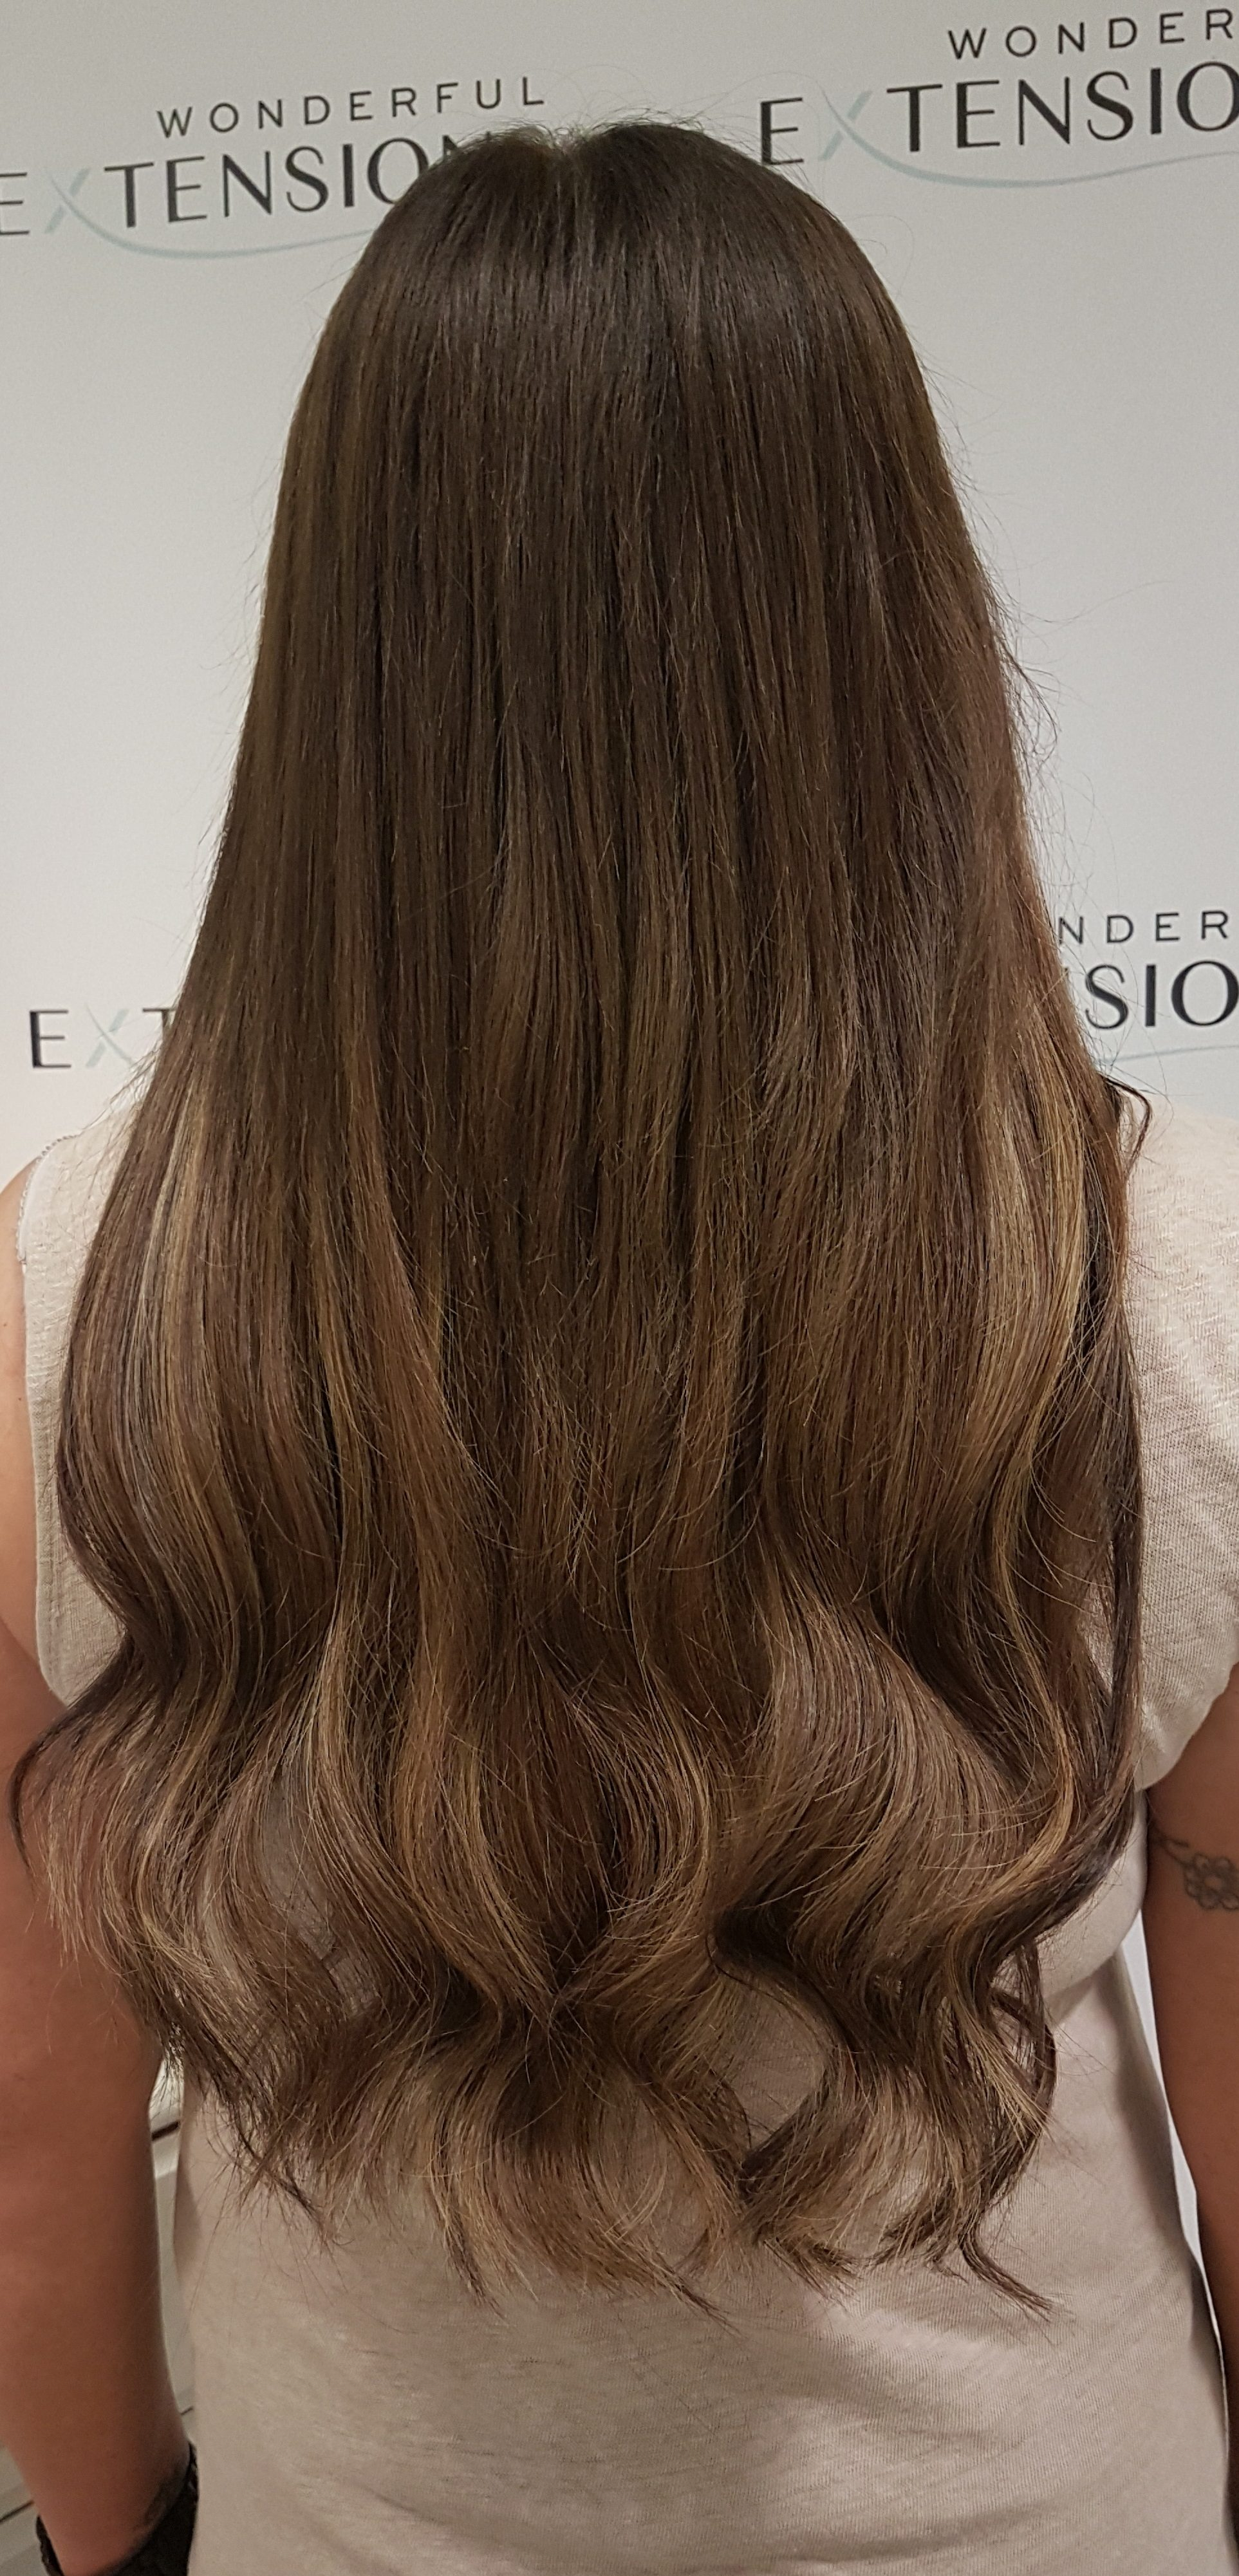 Hair Extensions London - Hash Brown Blond Meche